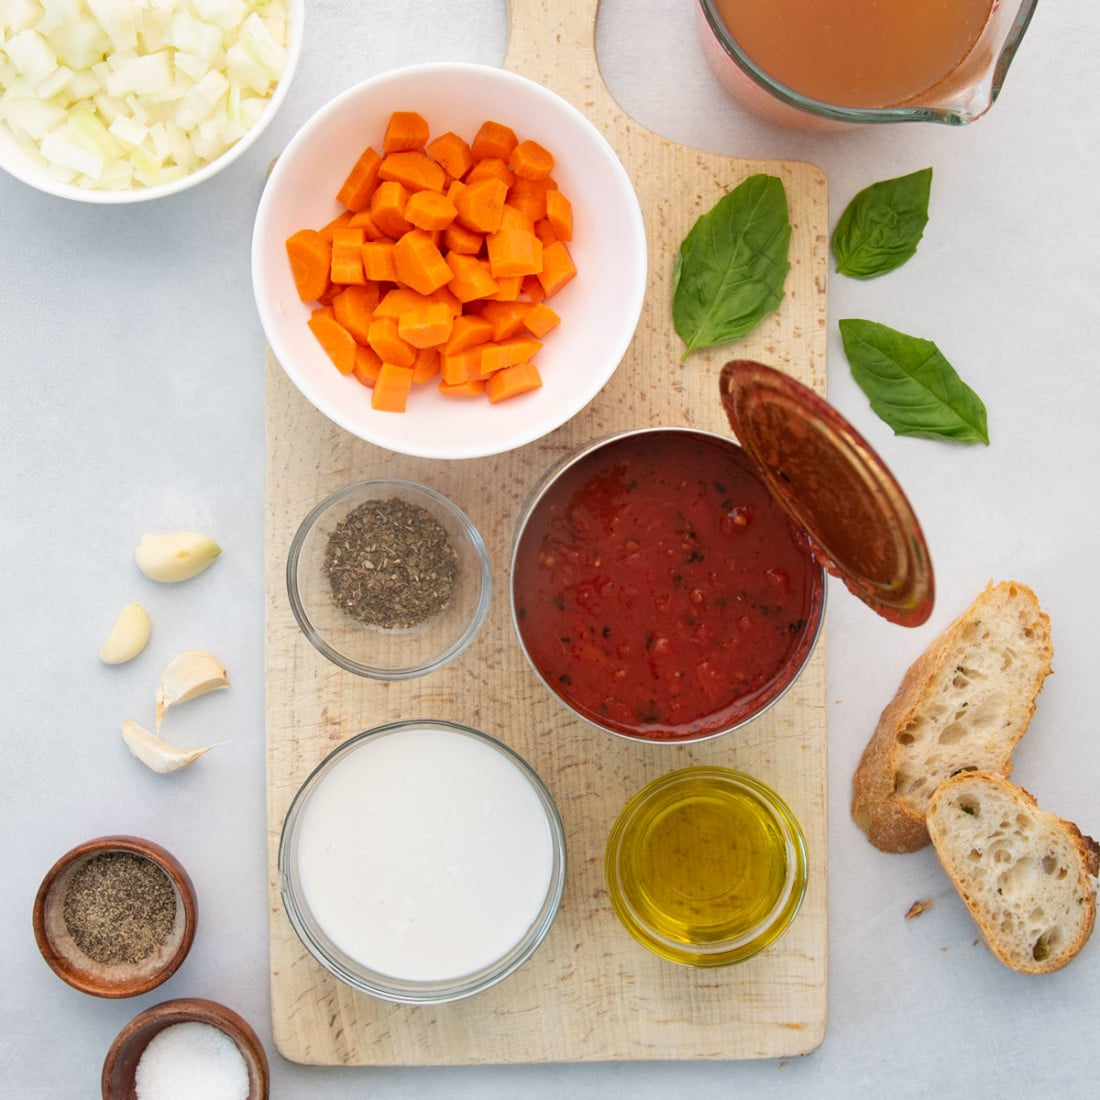 overhead view of canned tomatoes, carrots, coconut milk, seasonings, and bread